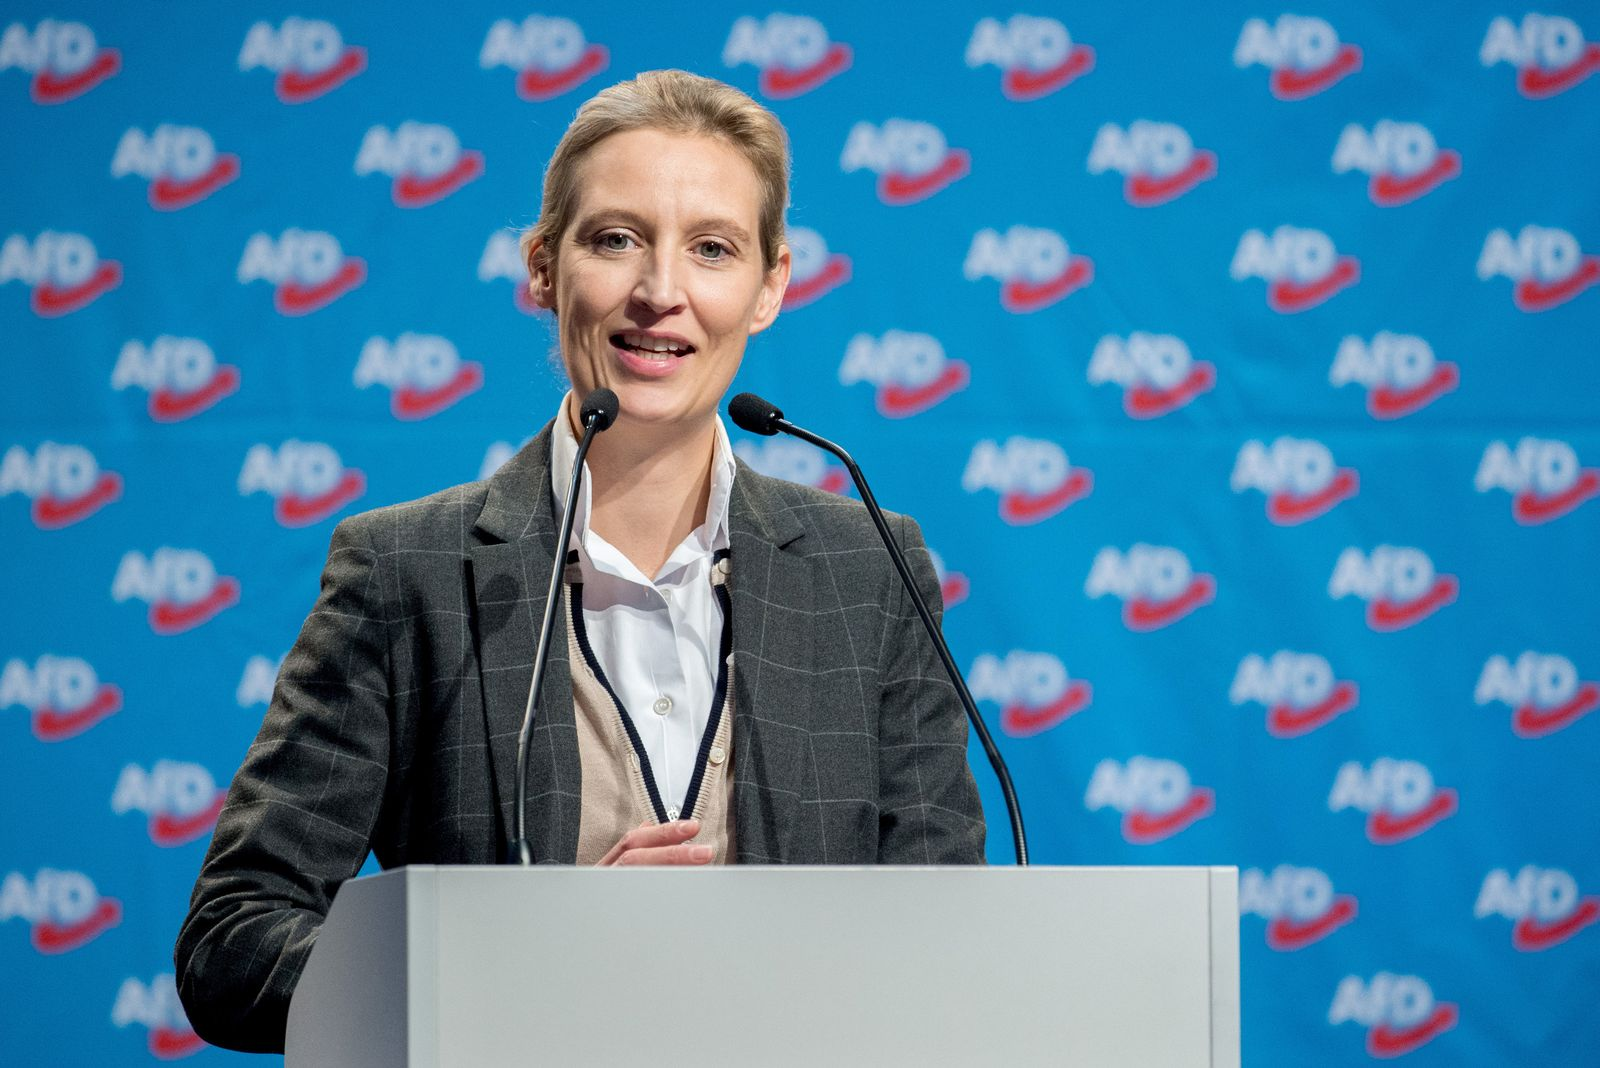 TV/ Tatort/ Alice Weidel, AfD